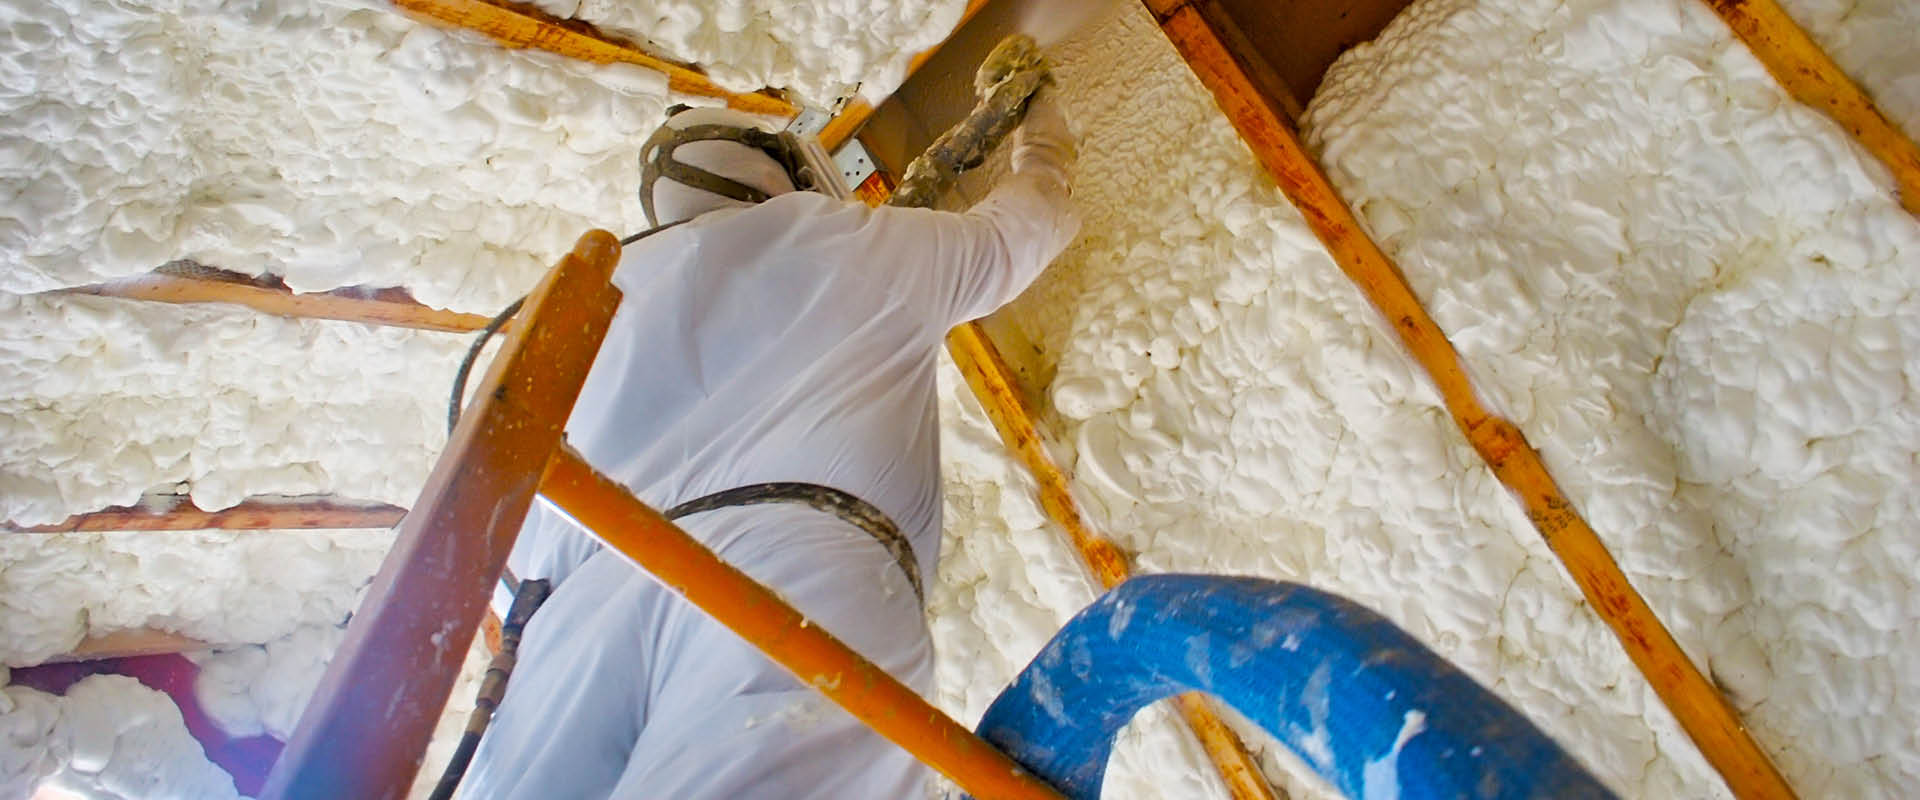 Ask us about the benefits of open cell and closed cell foam insulation